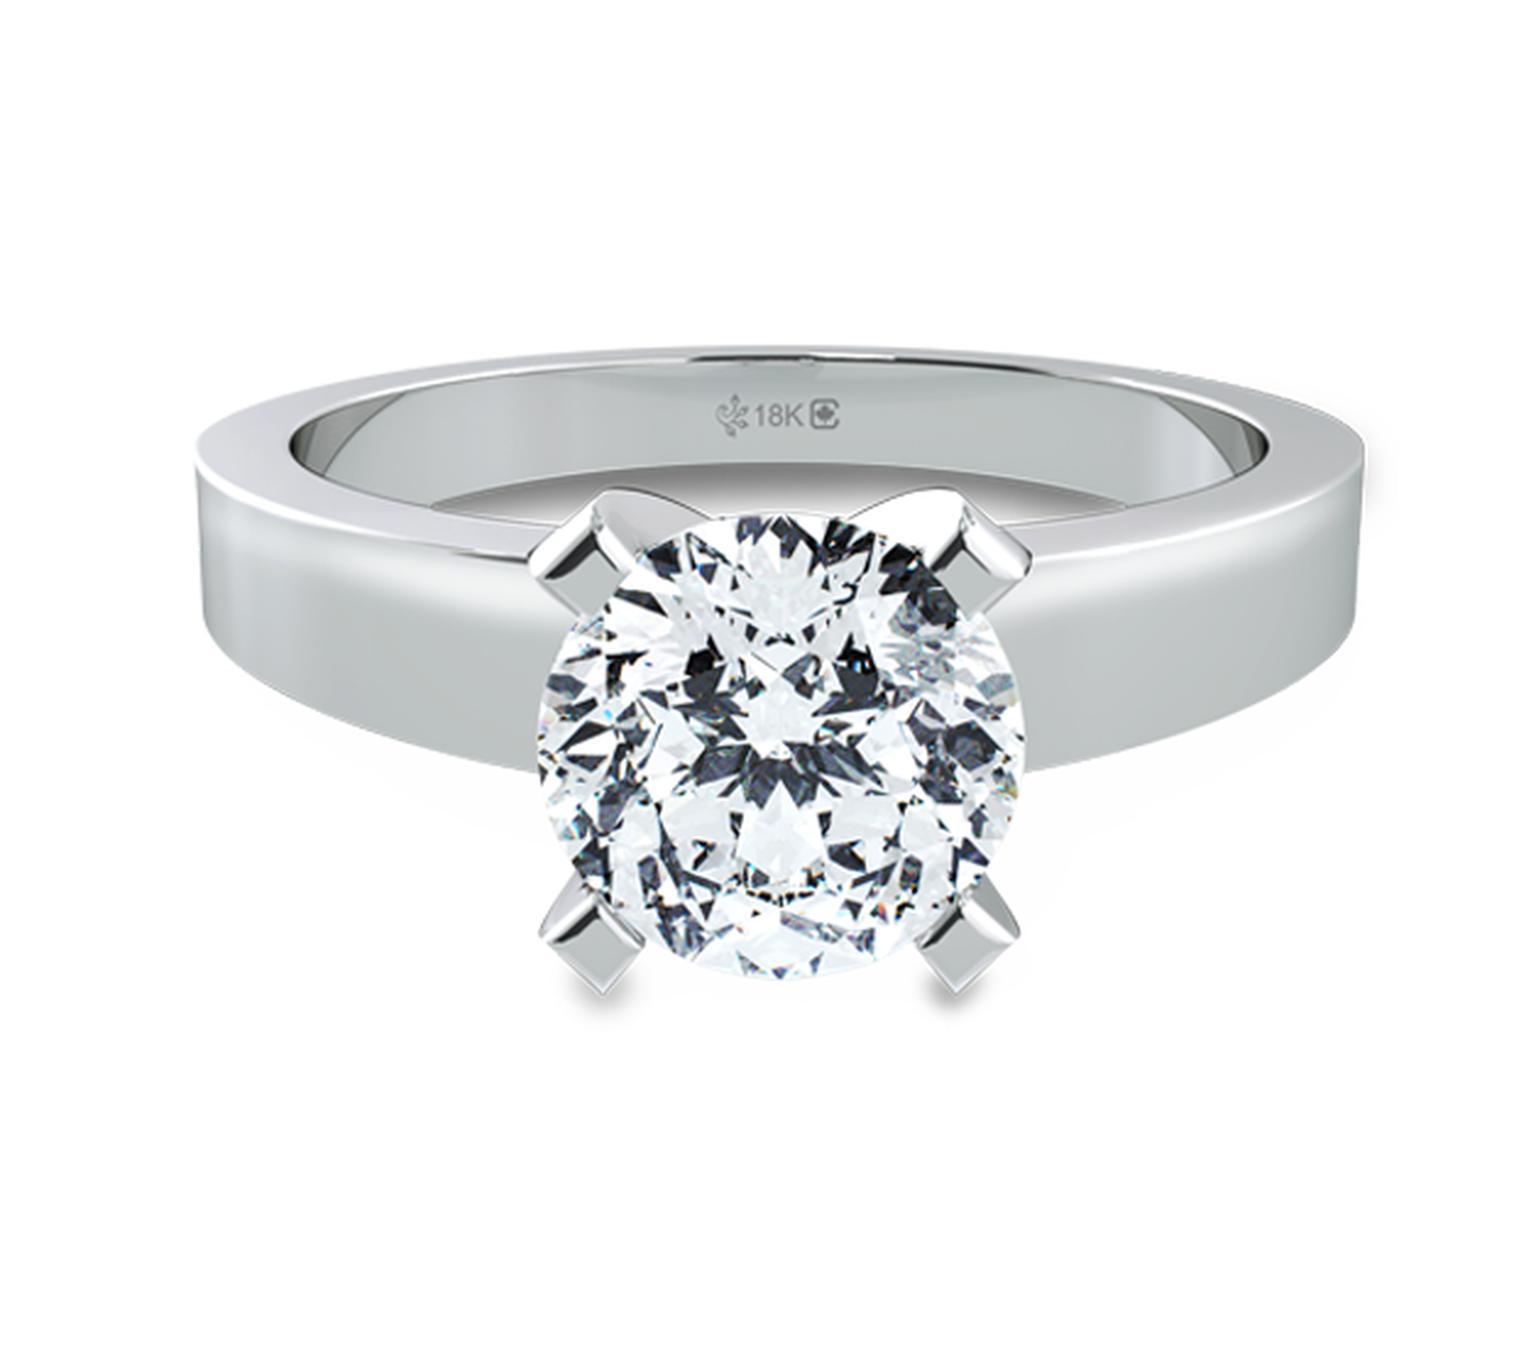 Fair Trade Jewellery Company Star-Sign Solitaire diamond engagement ring in Fairtrade white gold, set with a fully traceable 1.00ct Canadian diamond ($11,995).